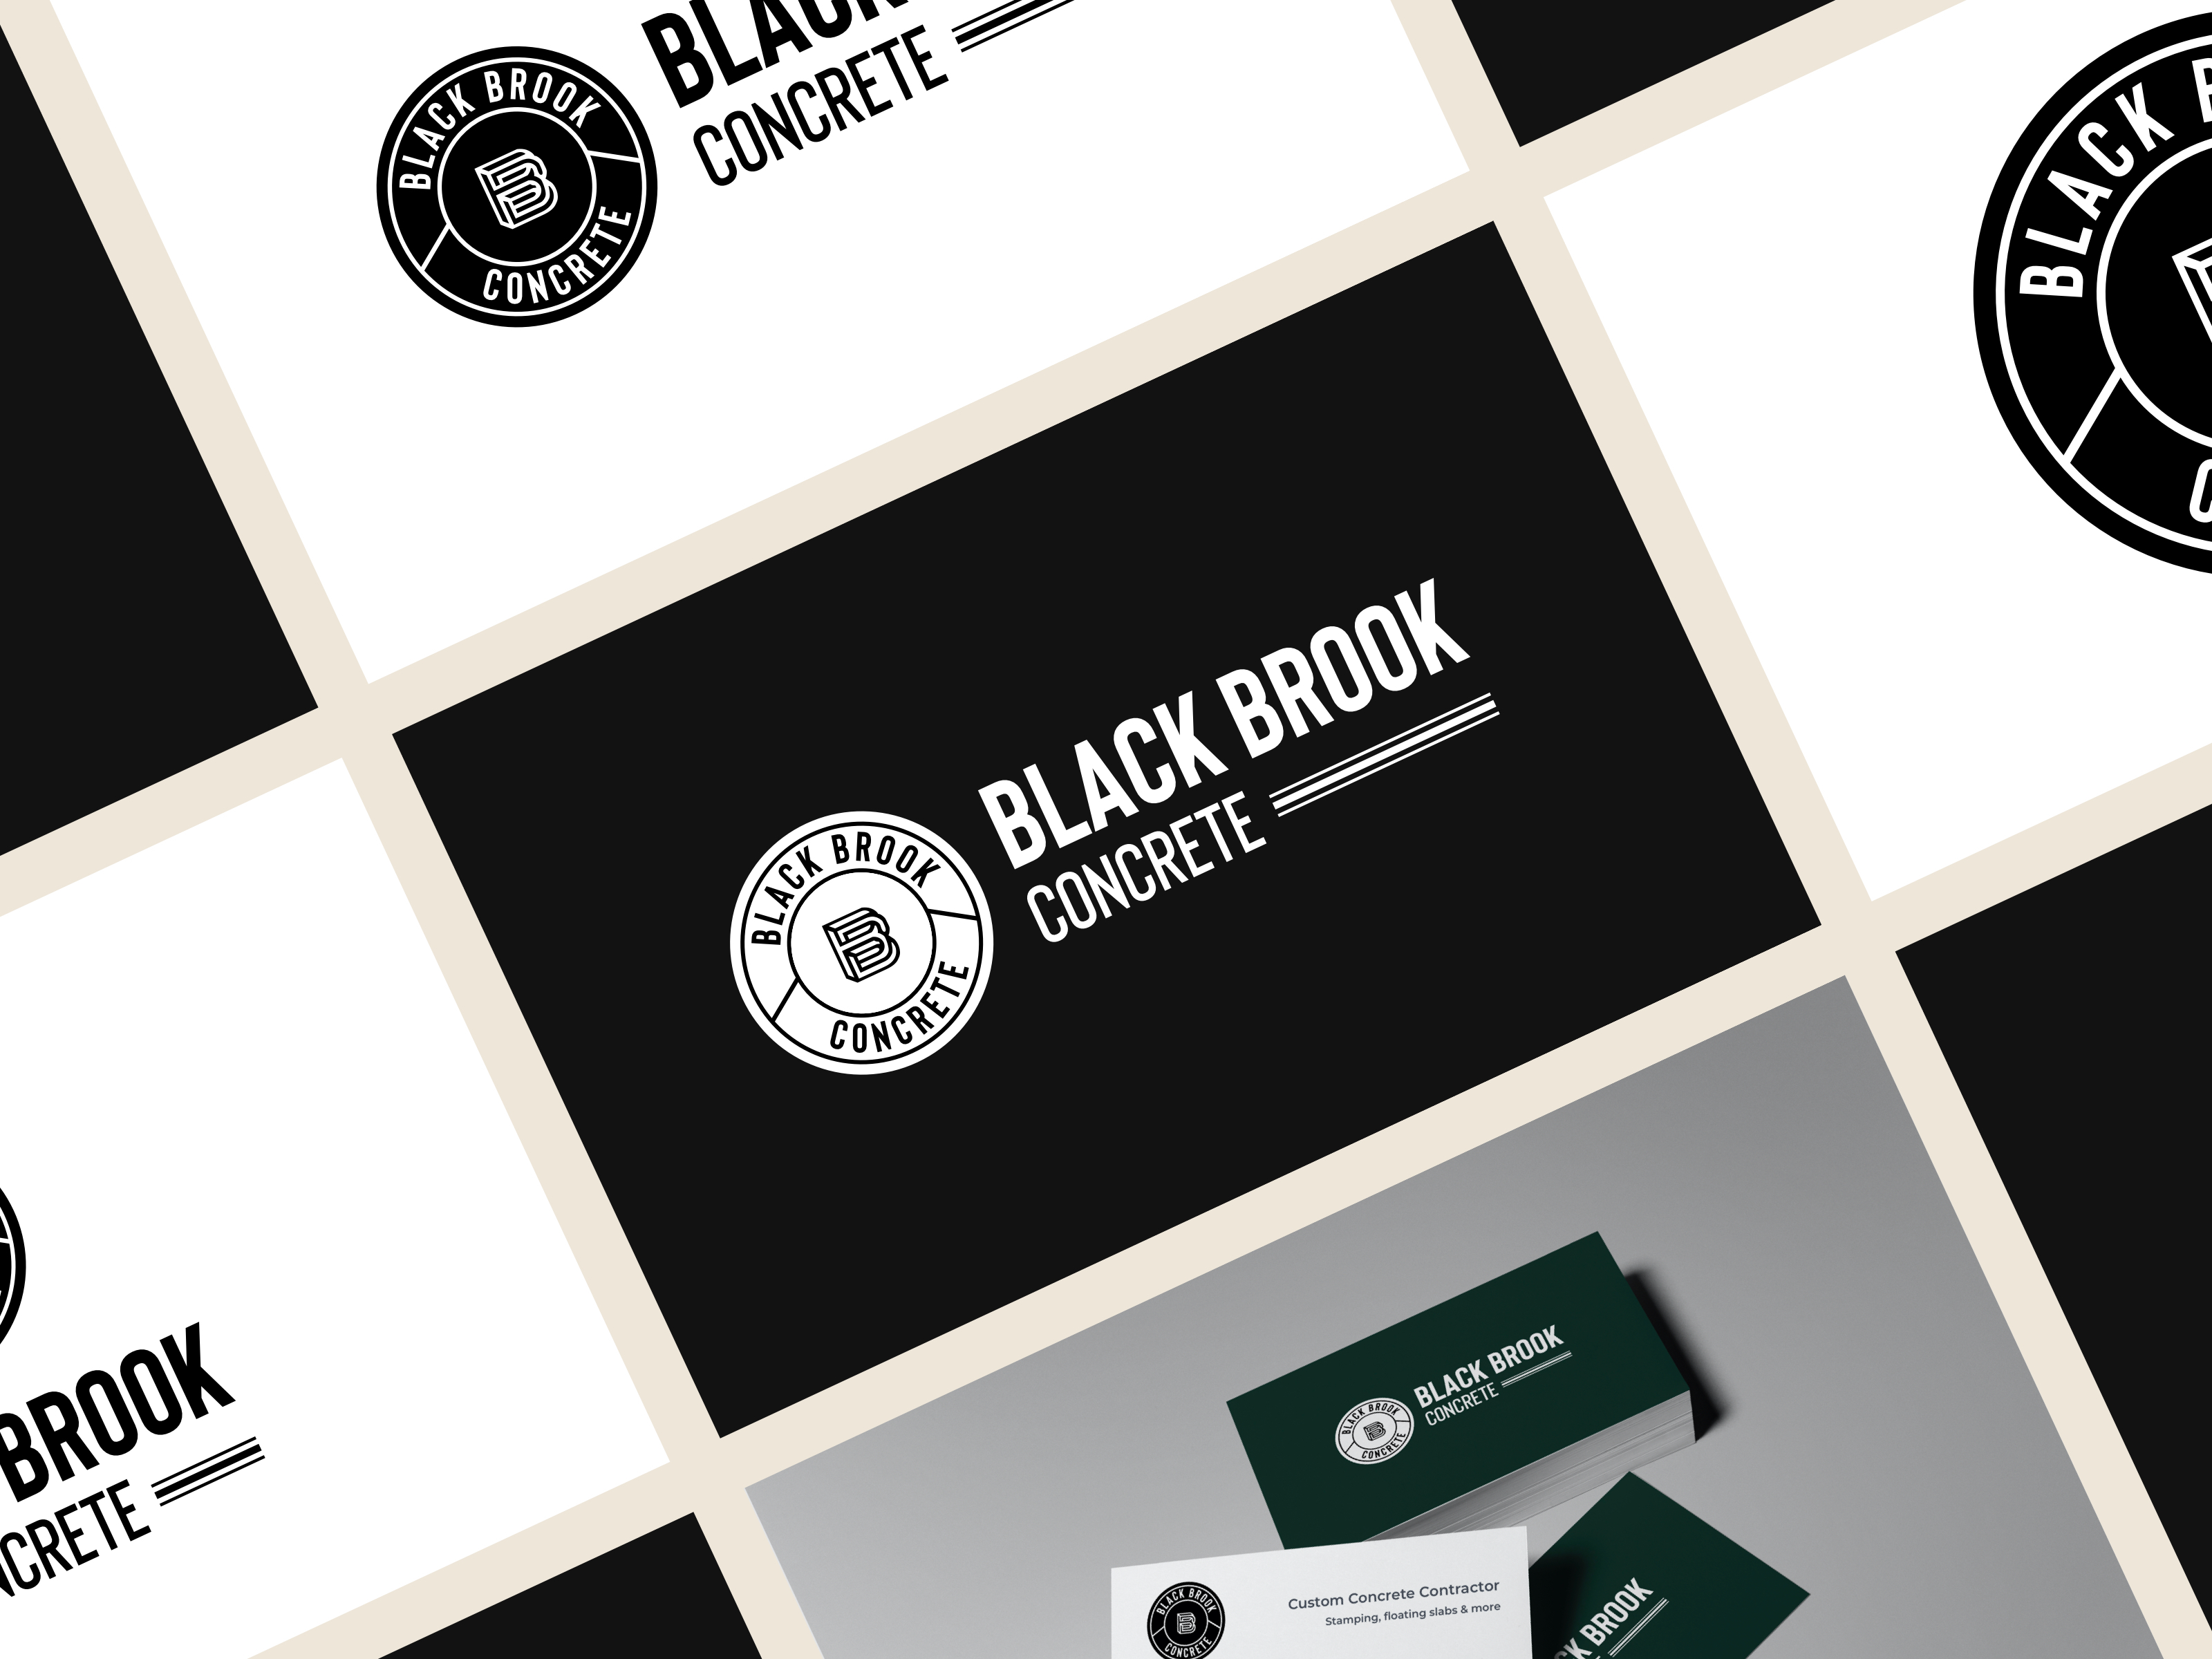 Black Brook Concrete Branding